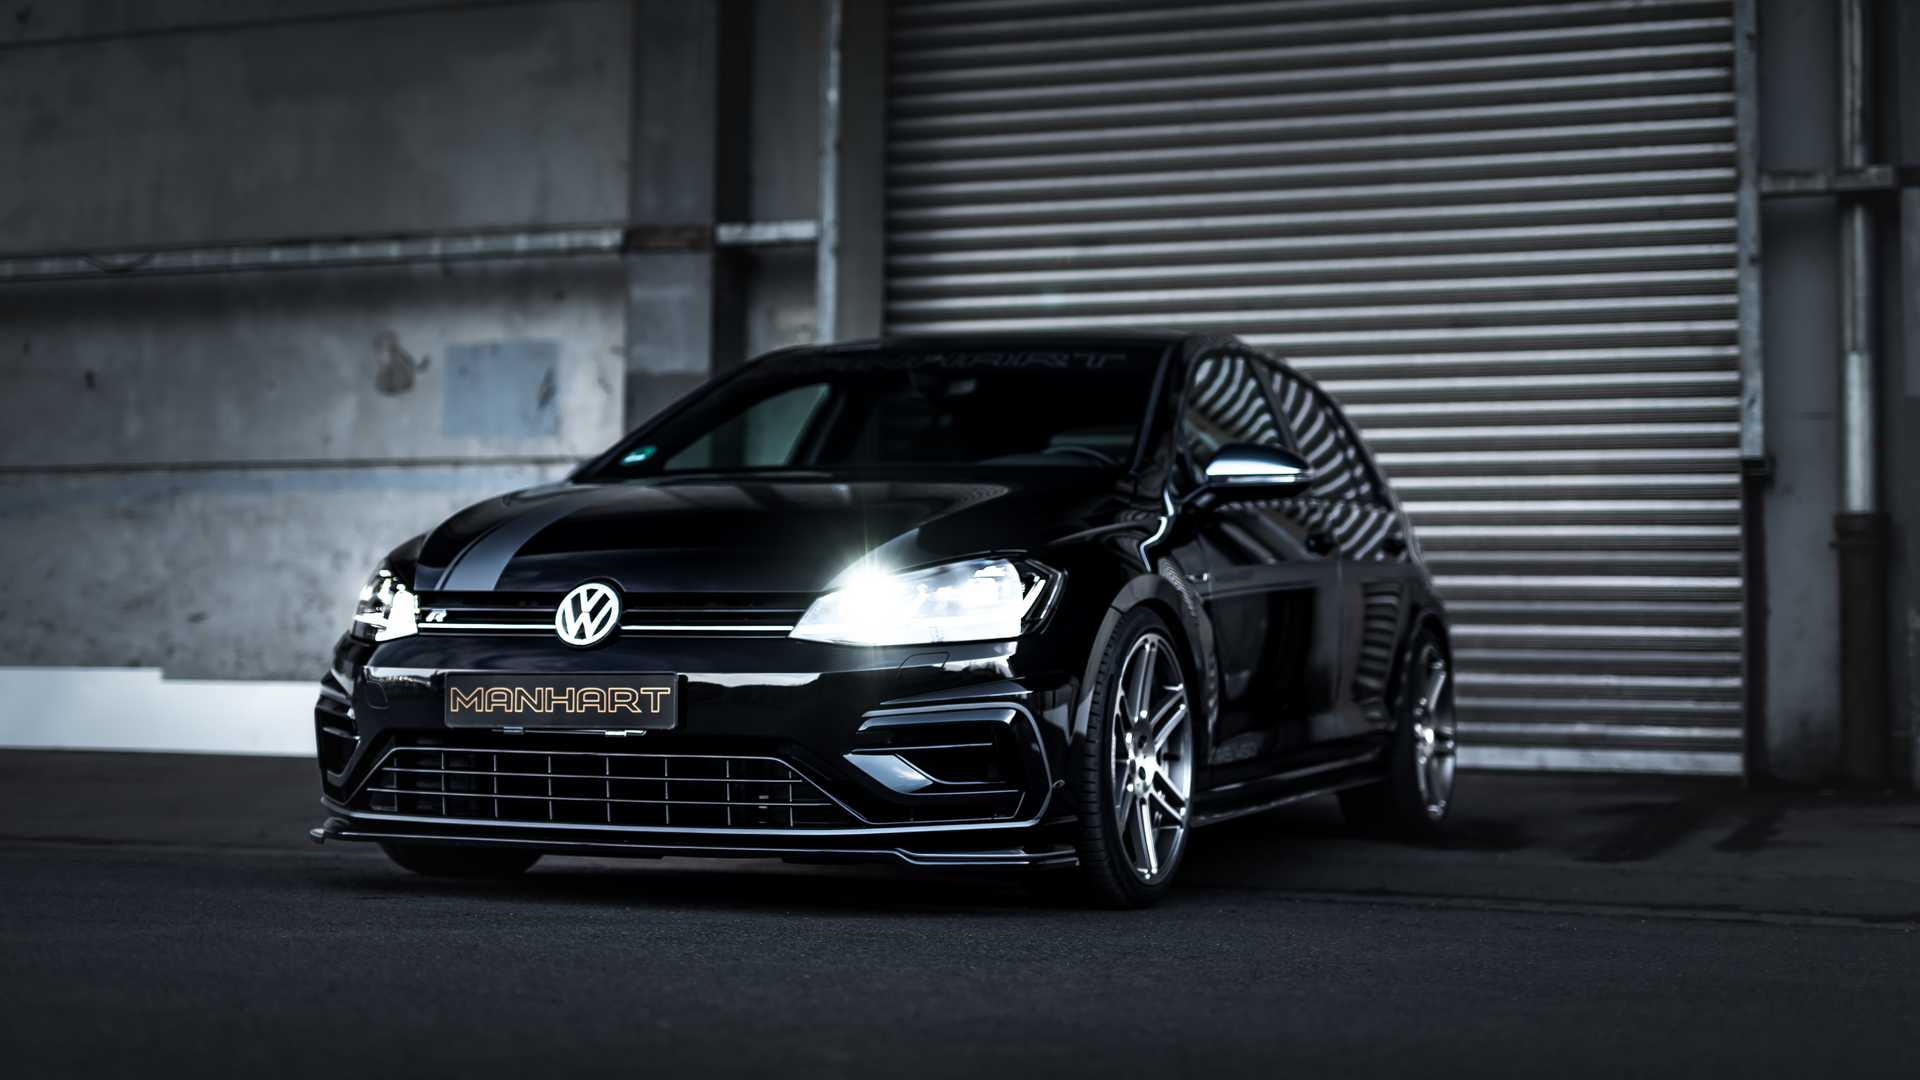 manhart-rs450-based-on-the-vw-golf-r (2)